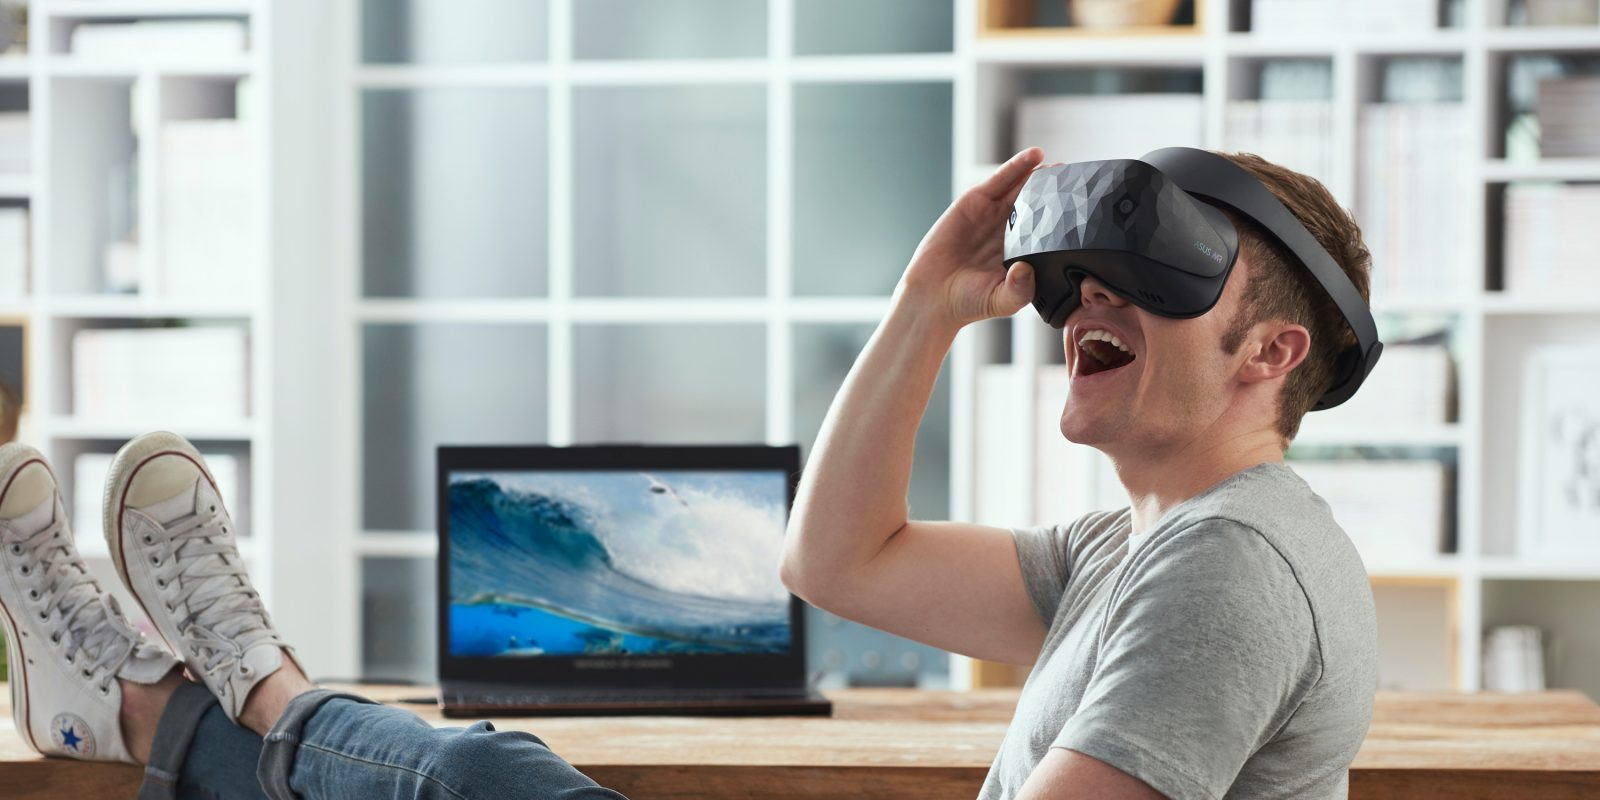 Google Chrome to support Windows Mixed Reality headsets